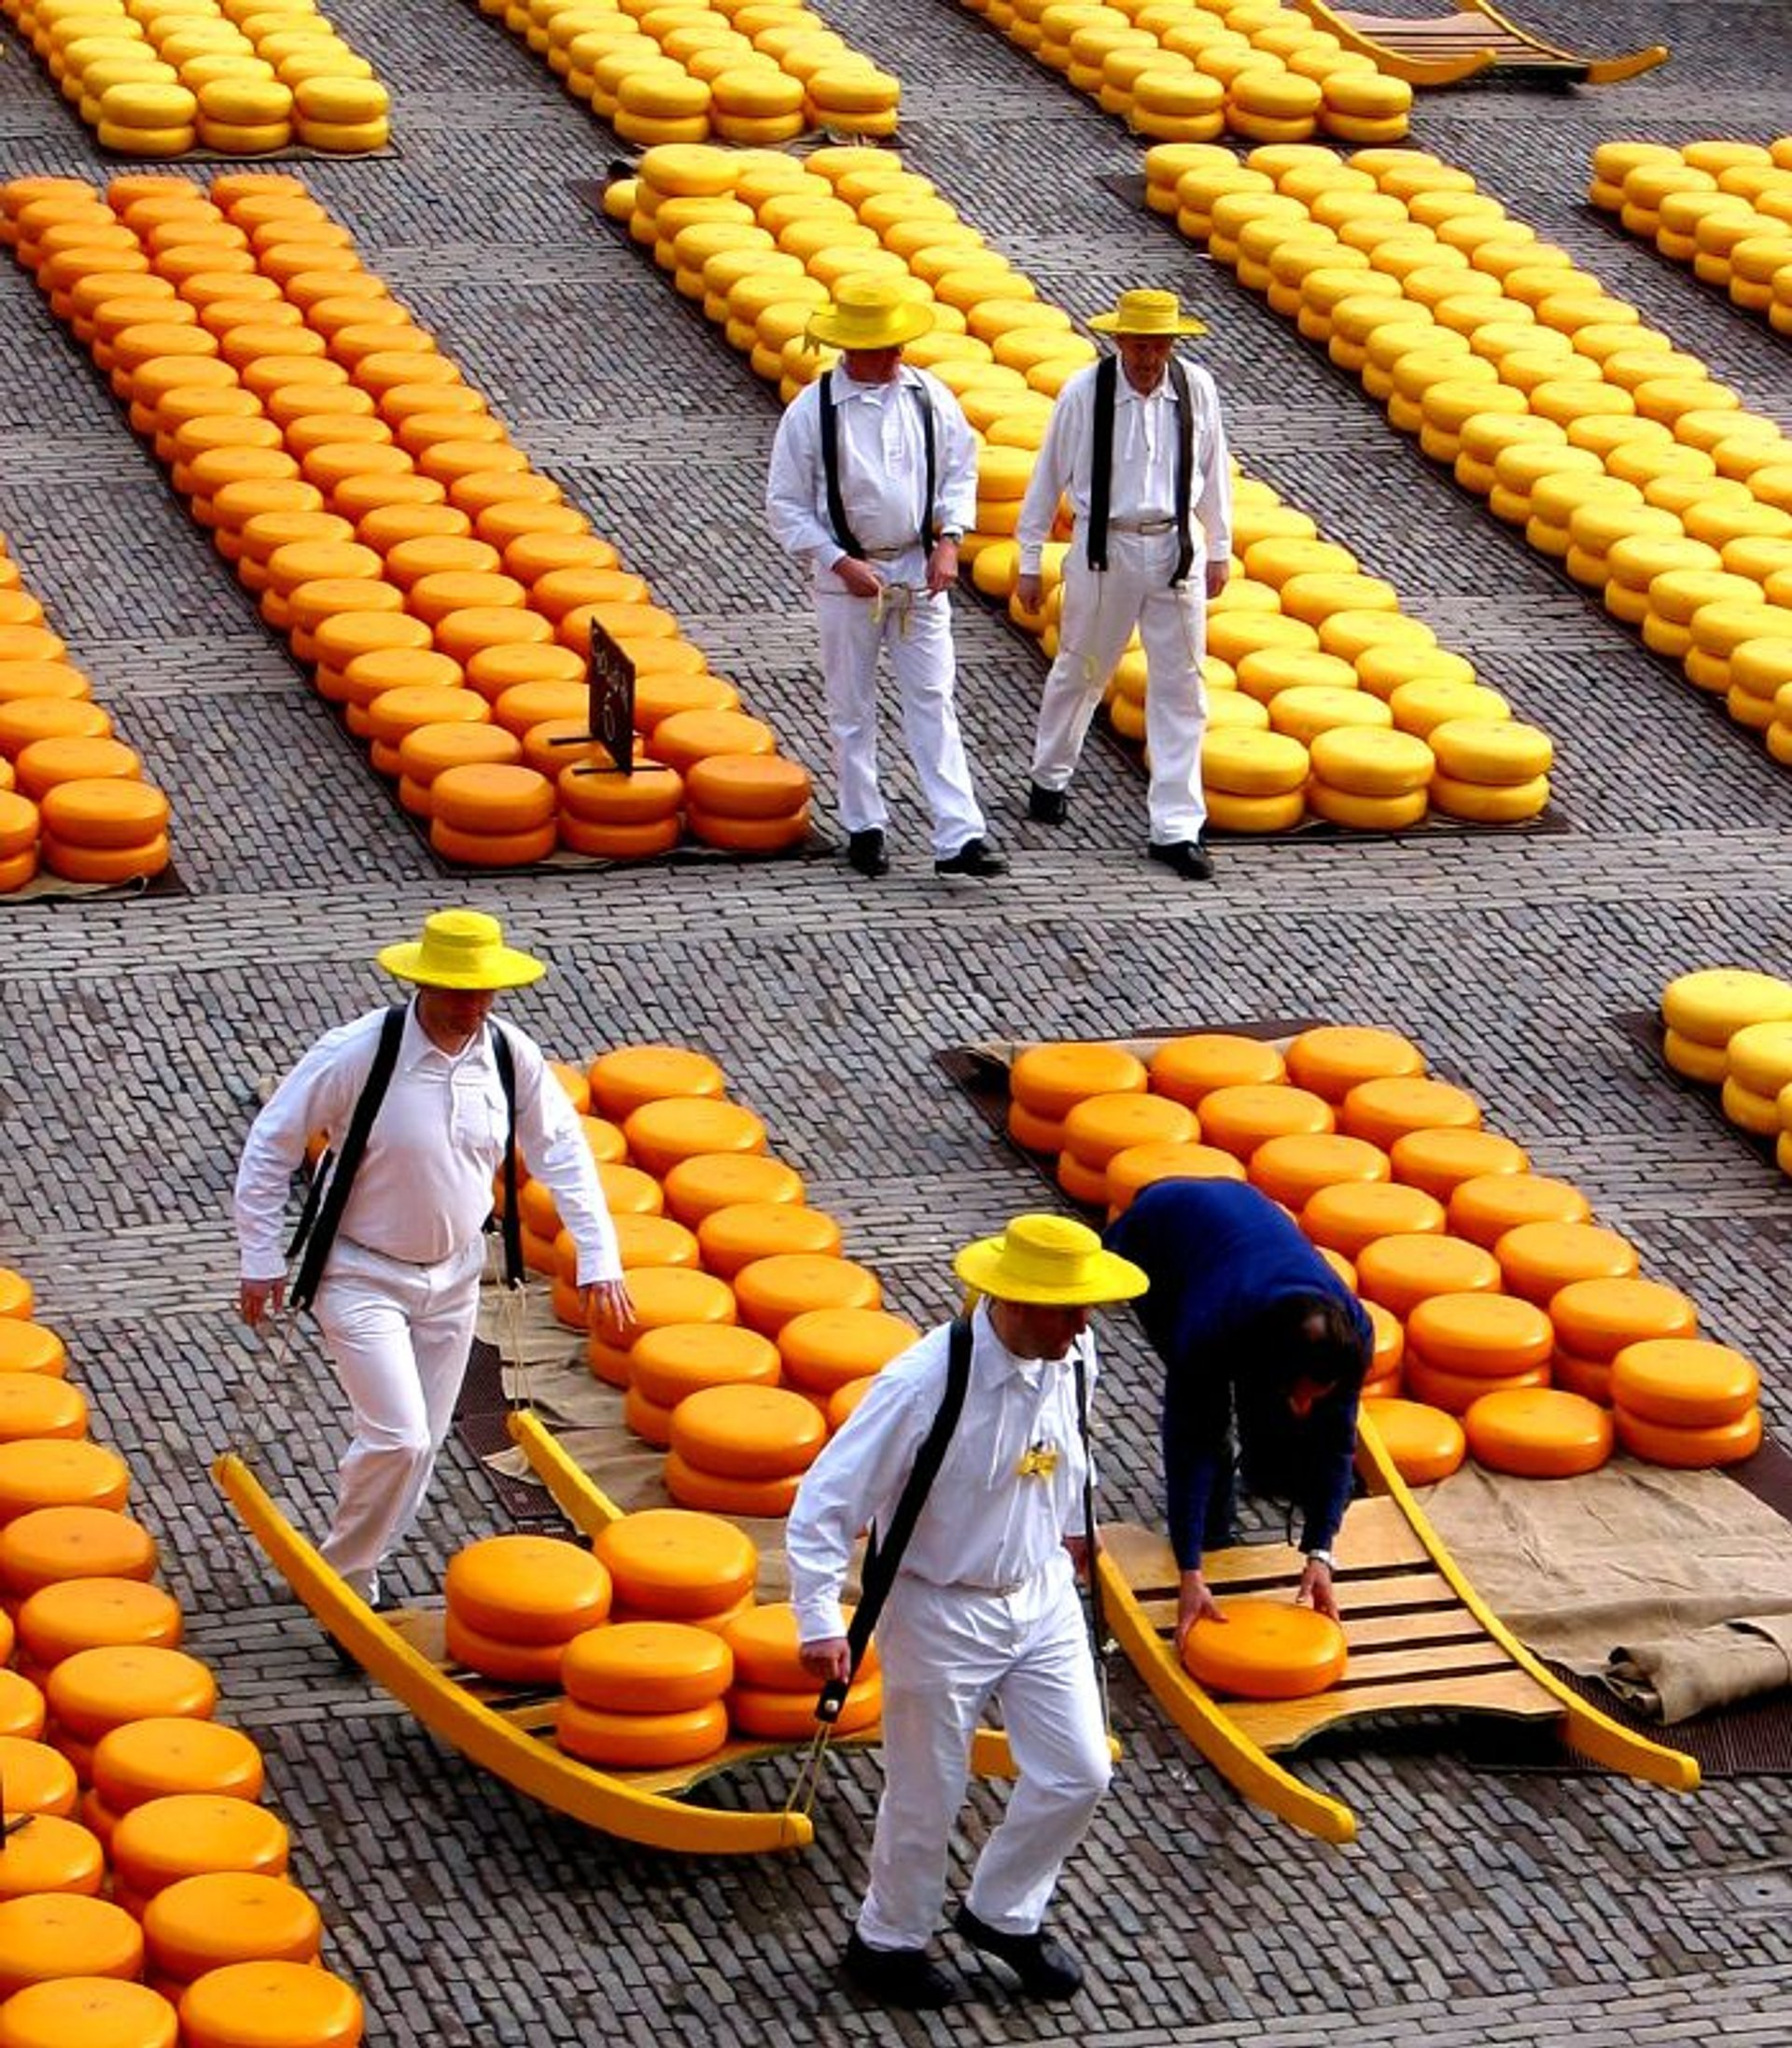 Alkmaar Cheese Market in The Netherlands - Best Season 2019